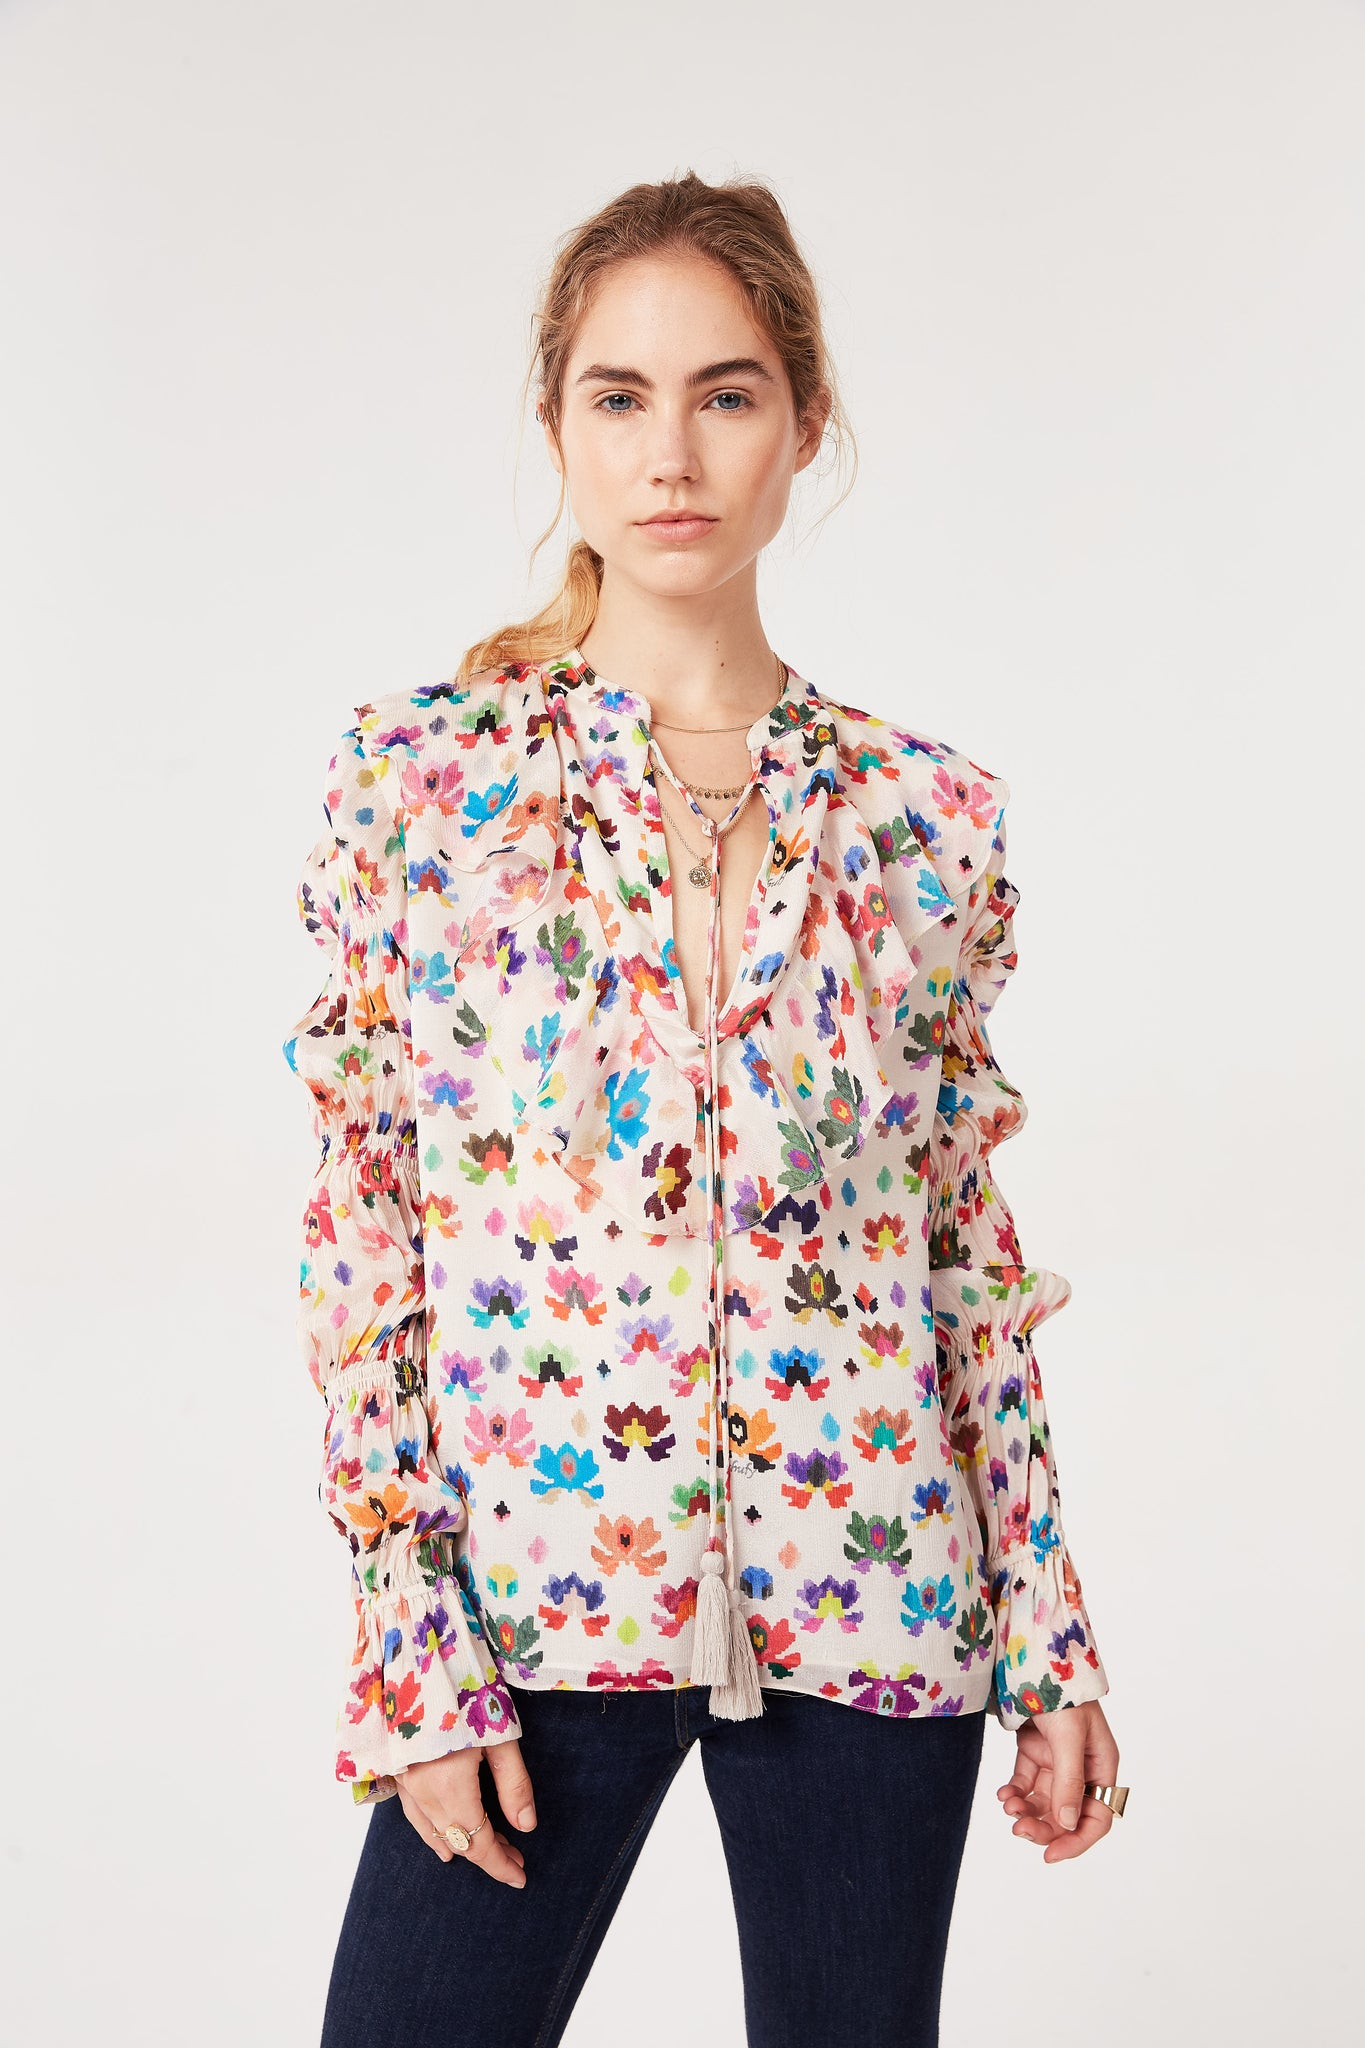 Iquitos Blouse